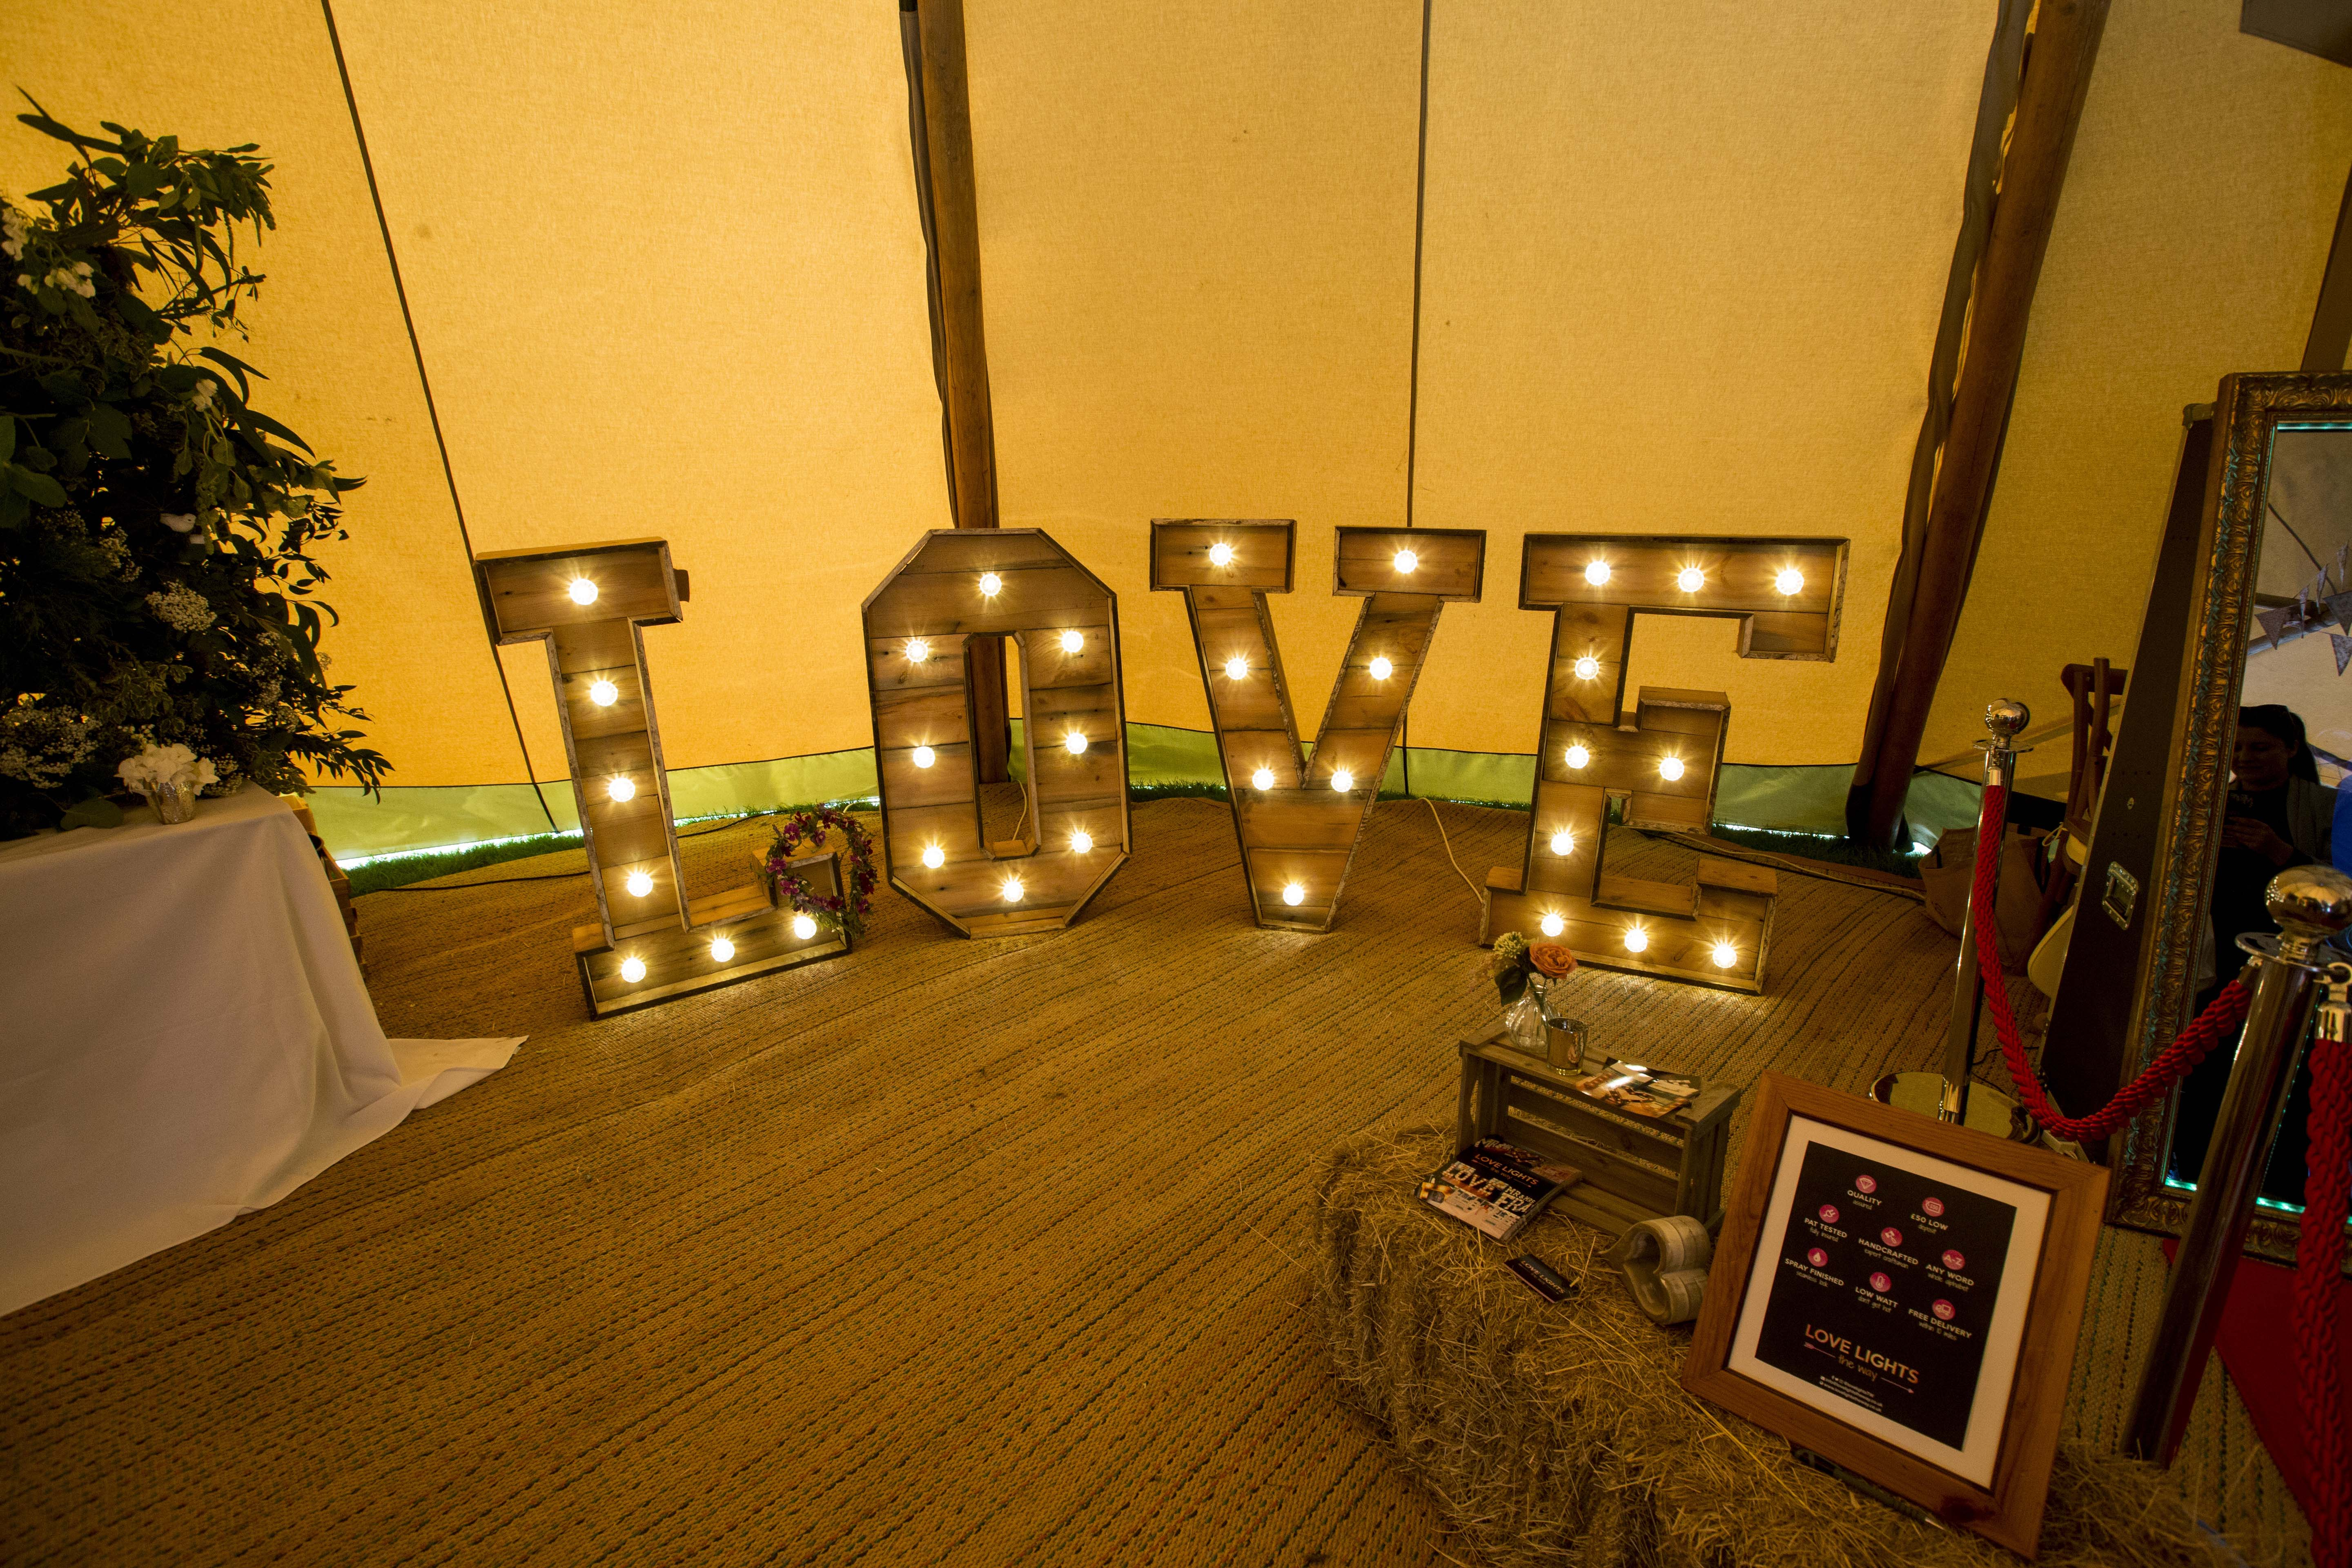 Love lights - a popular decor choice